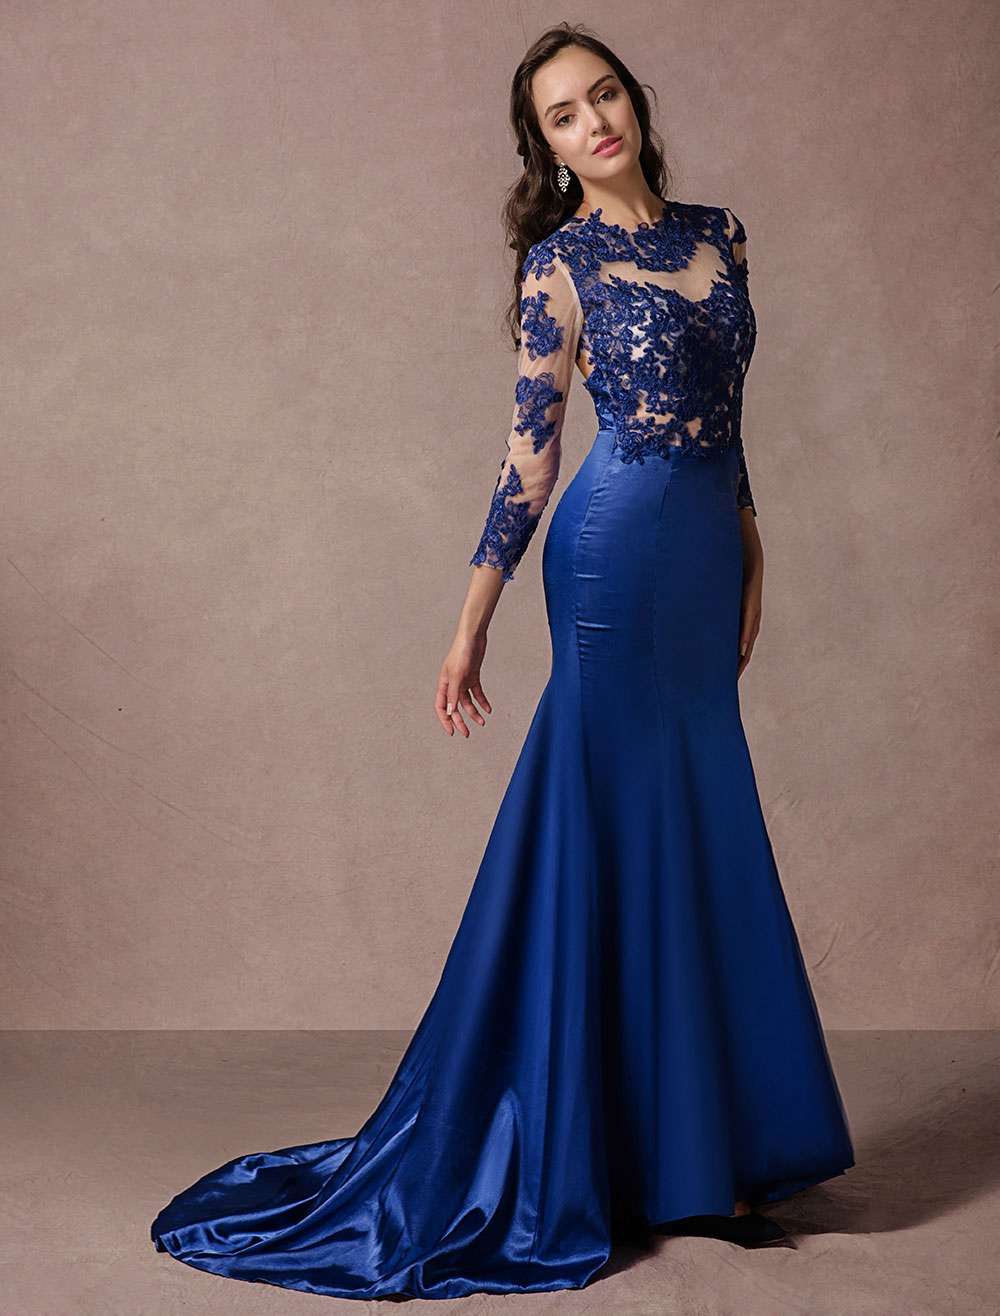 Lace Evening Dress Long Sleeves Blue Satin Backless Mermaid Party Dress With Court Train